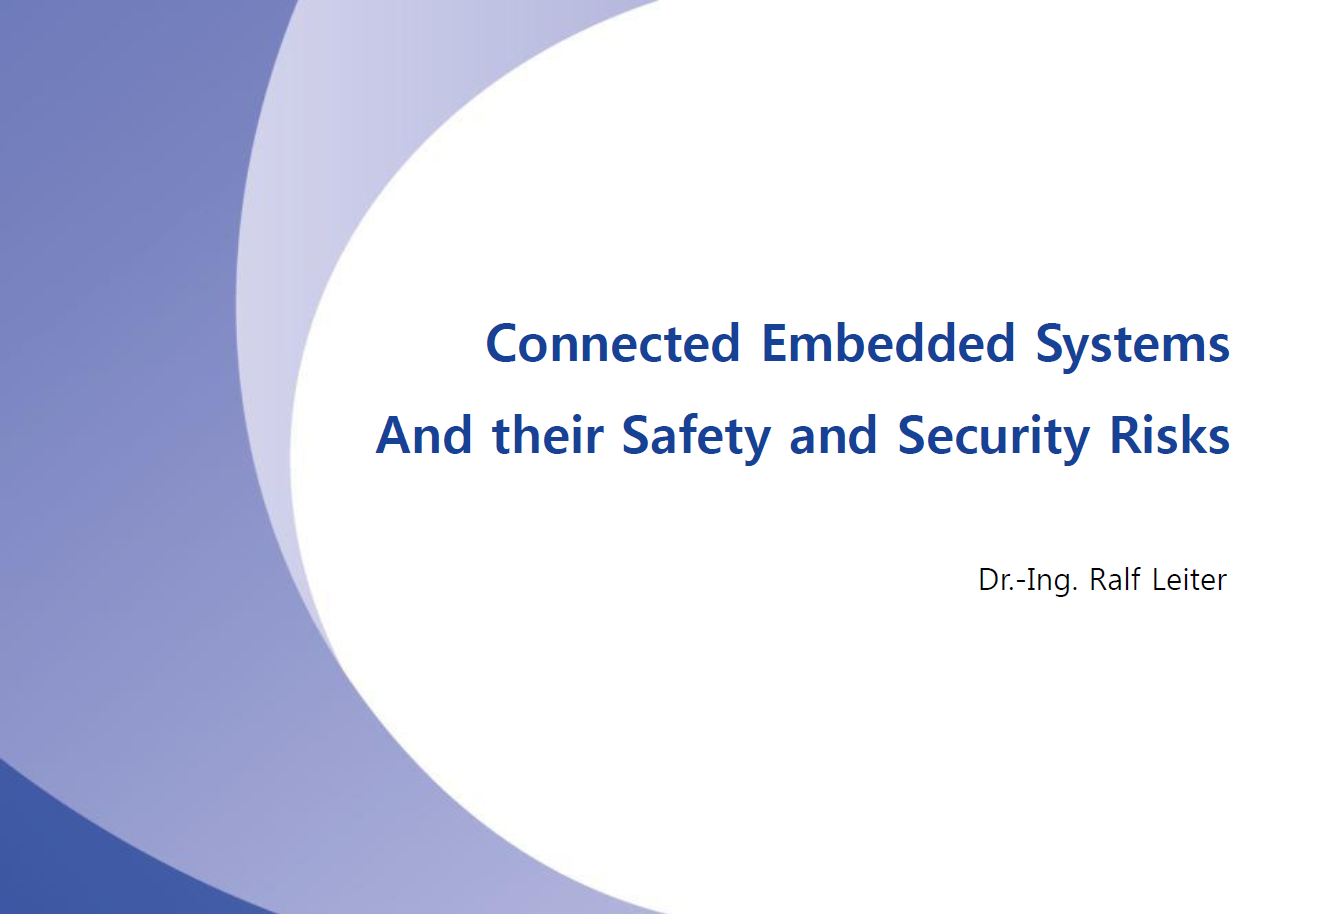 Presentation on connected embedded systems and their safety and security risks